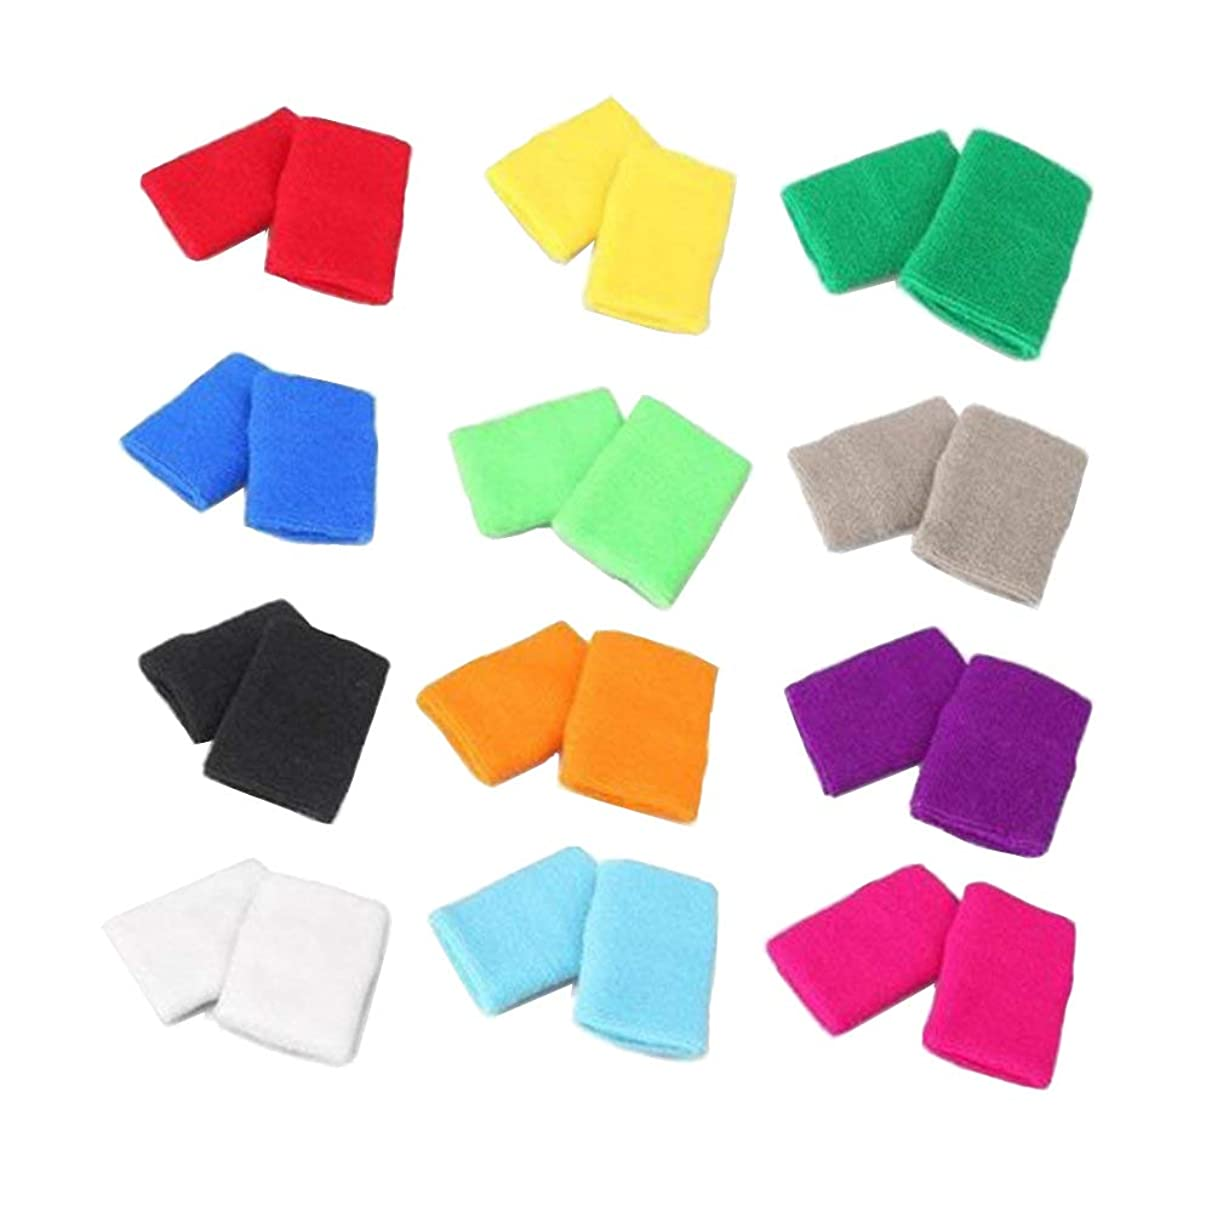 STONCEL 12/24/40 Pairs Colorful Sports Wristbands Cotton Sweatband Wristbands Wrist Sweatbands Wrist Sweat Bands for Tennis,Sport, Basketball,Gymnastics,Golf,Running